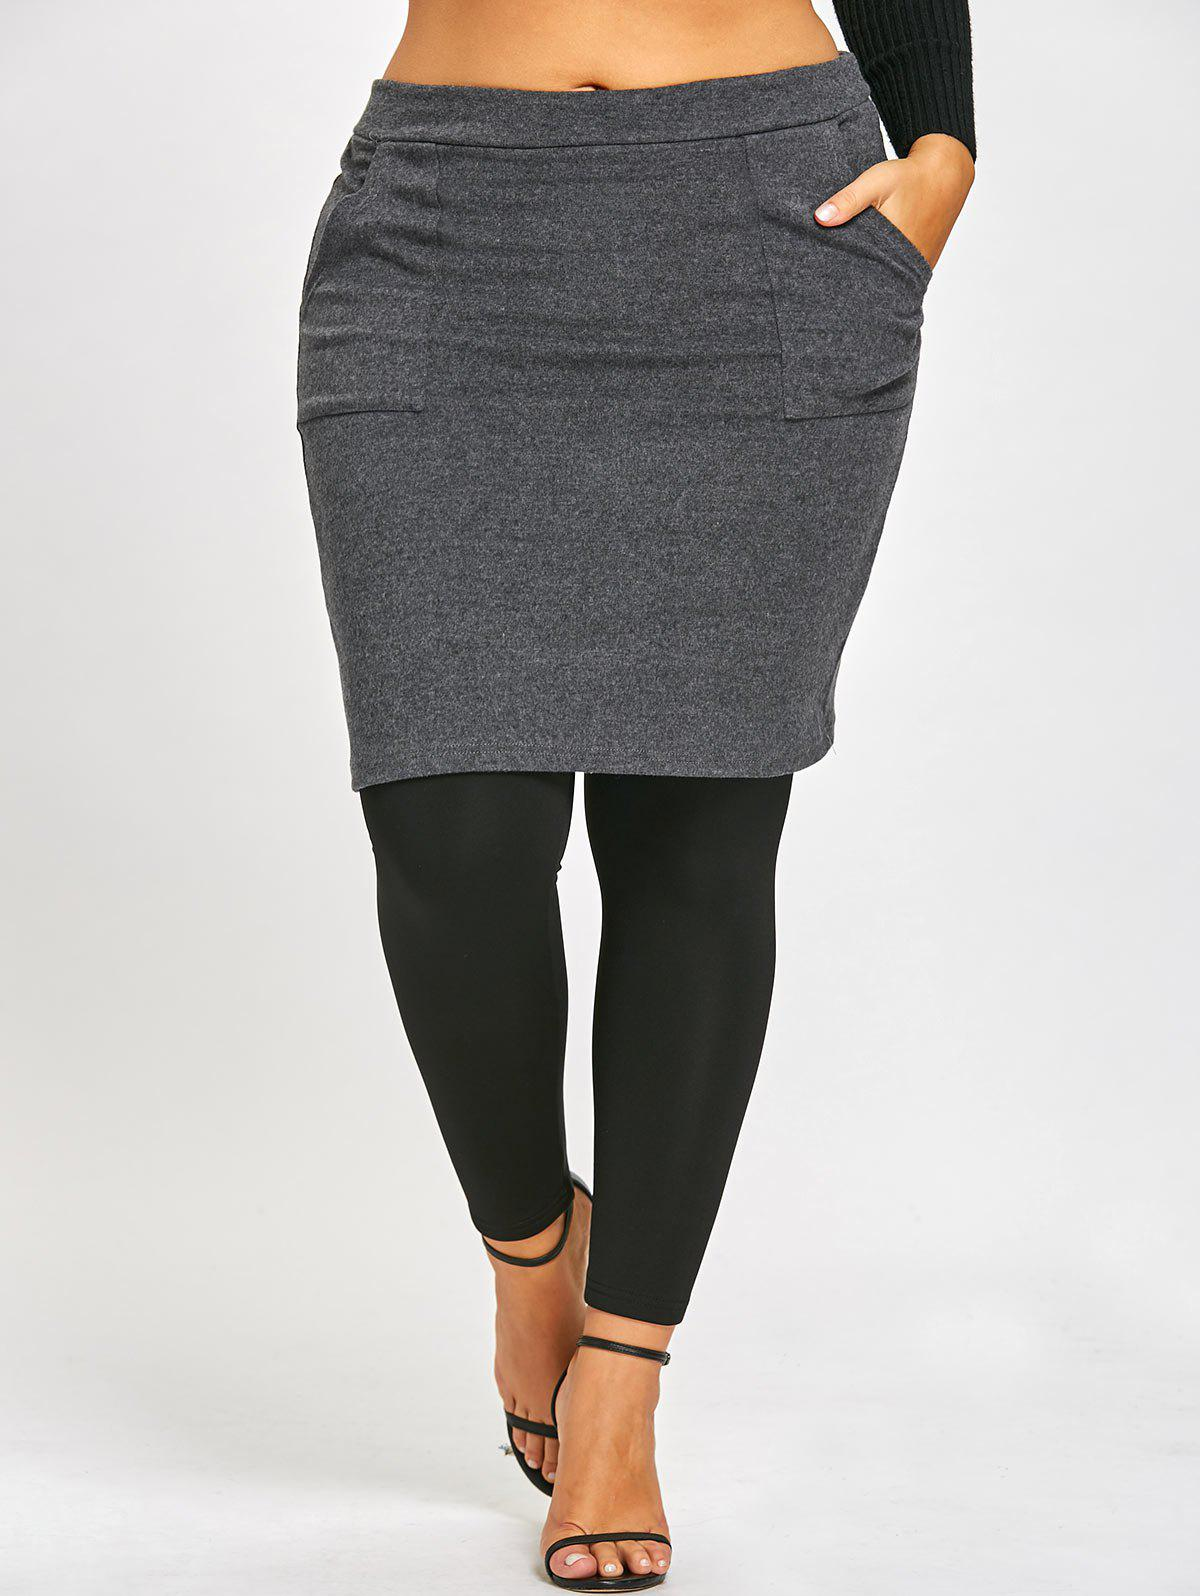 Plus Size Skirted LeggingsWOMEN<br><br>Size: 5XL; Color: BLACK AND GREY; Style: Fashion; Length: Normal; Material: Polyester; Fit Type: Skinny; Waist Type: Mid; Closure Type: Elastic Waist; Pattern Type: Others; Pant Style: Pencil Pants; Weight: 0.5000kg; Package Contents: 1 x Pants;